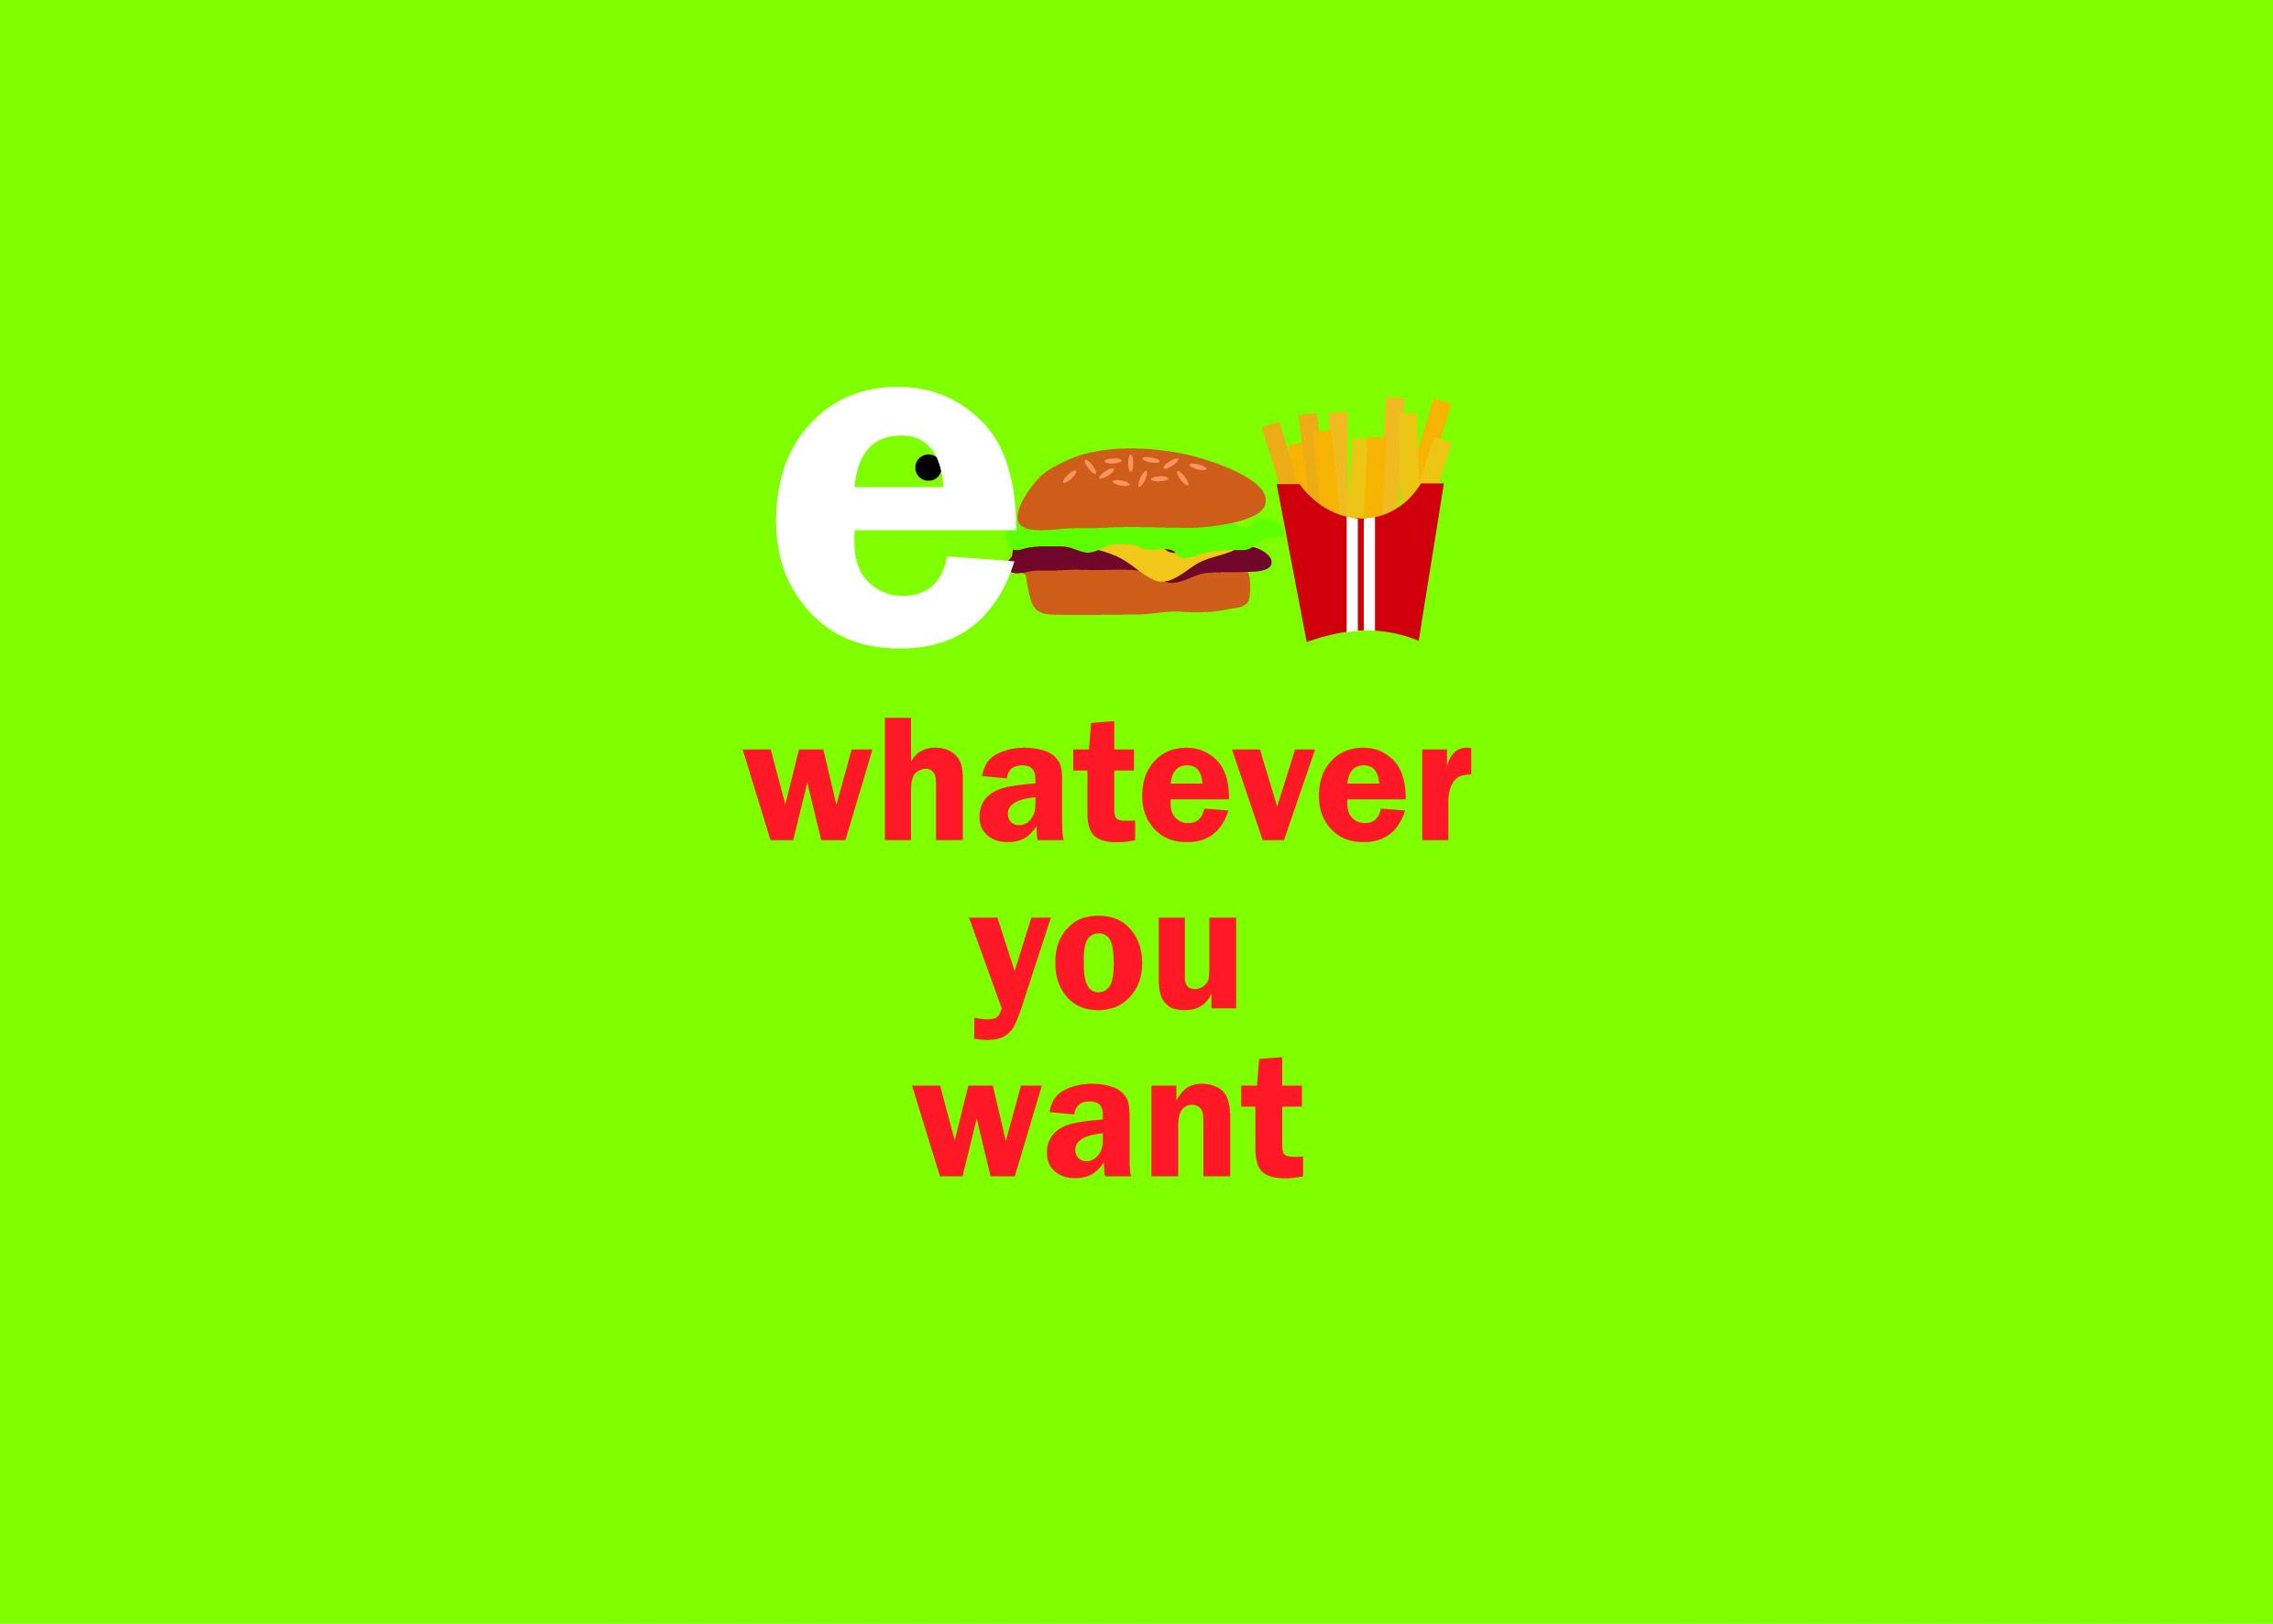 eating is fun - image 7 - student project